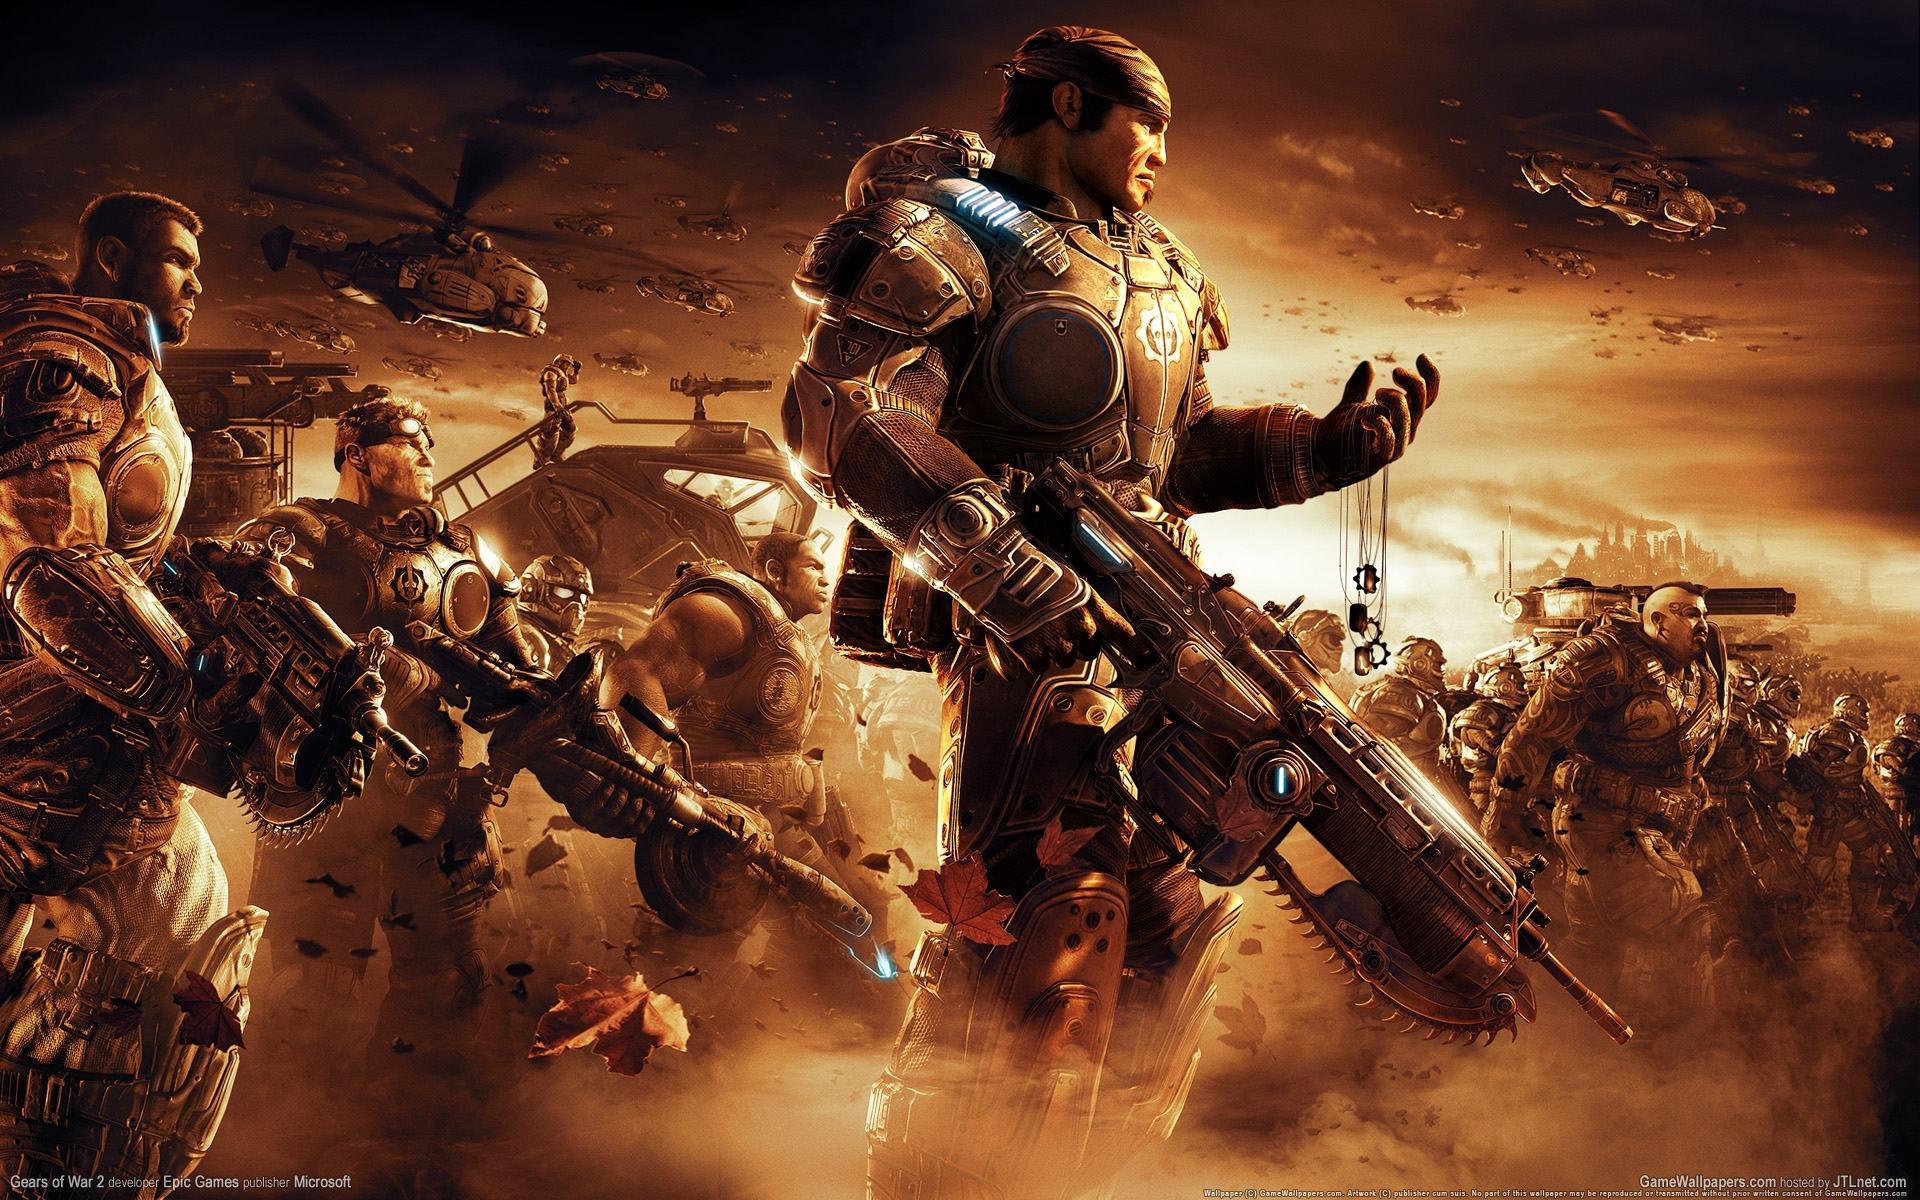 wallpaper gears of war 2 01 1920x1200 - 10 000 fonds d'écran hd